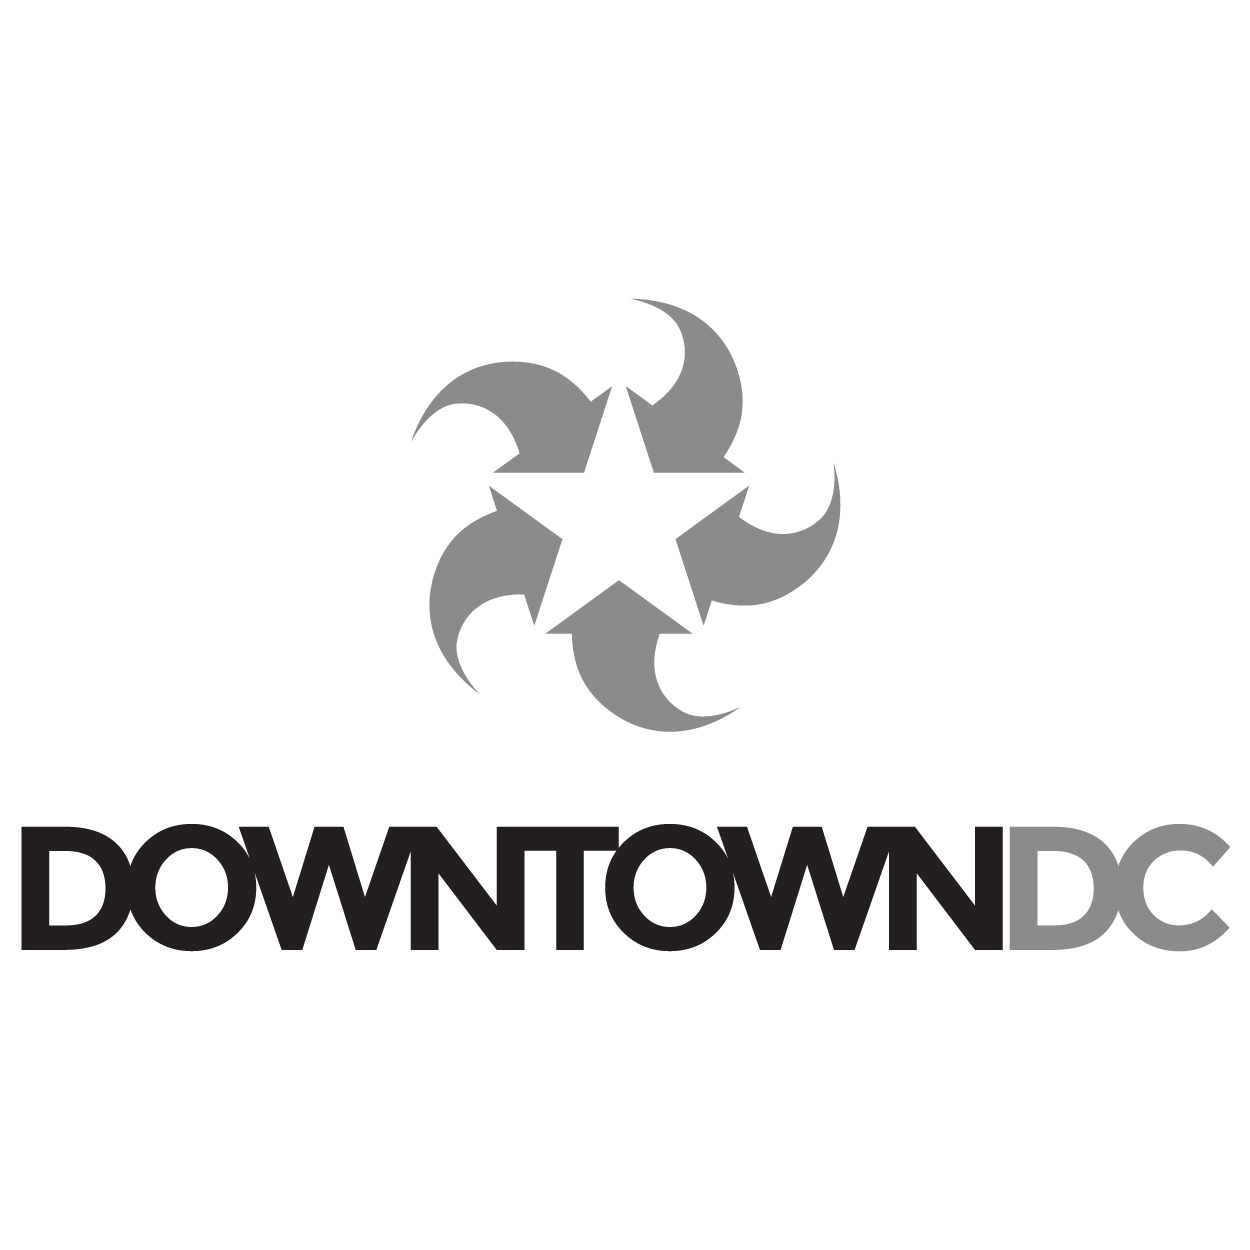 Downtown DC BID-01.png